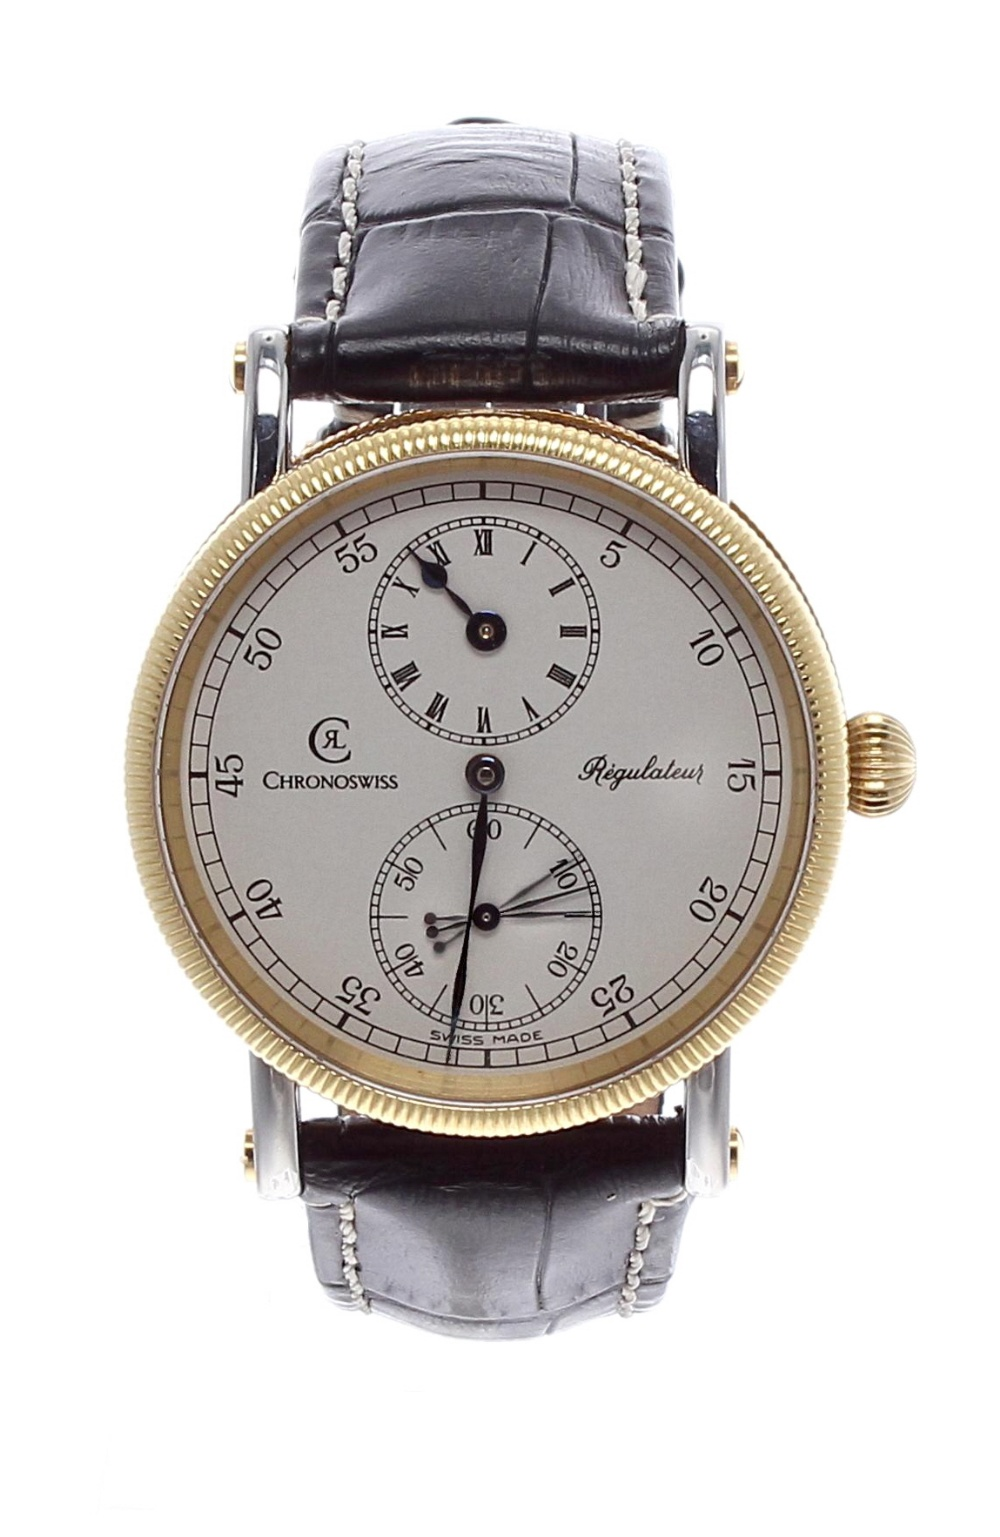 Lot 152 - Chronoswiss Regulateur gentleman's wristwatch, ref. CH 6322, circular silvered dial with outer